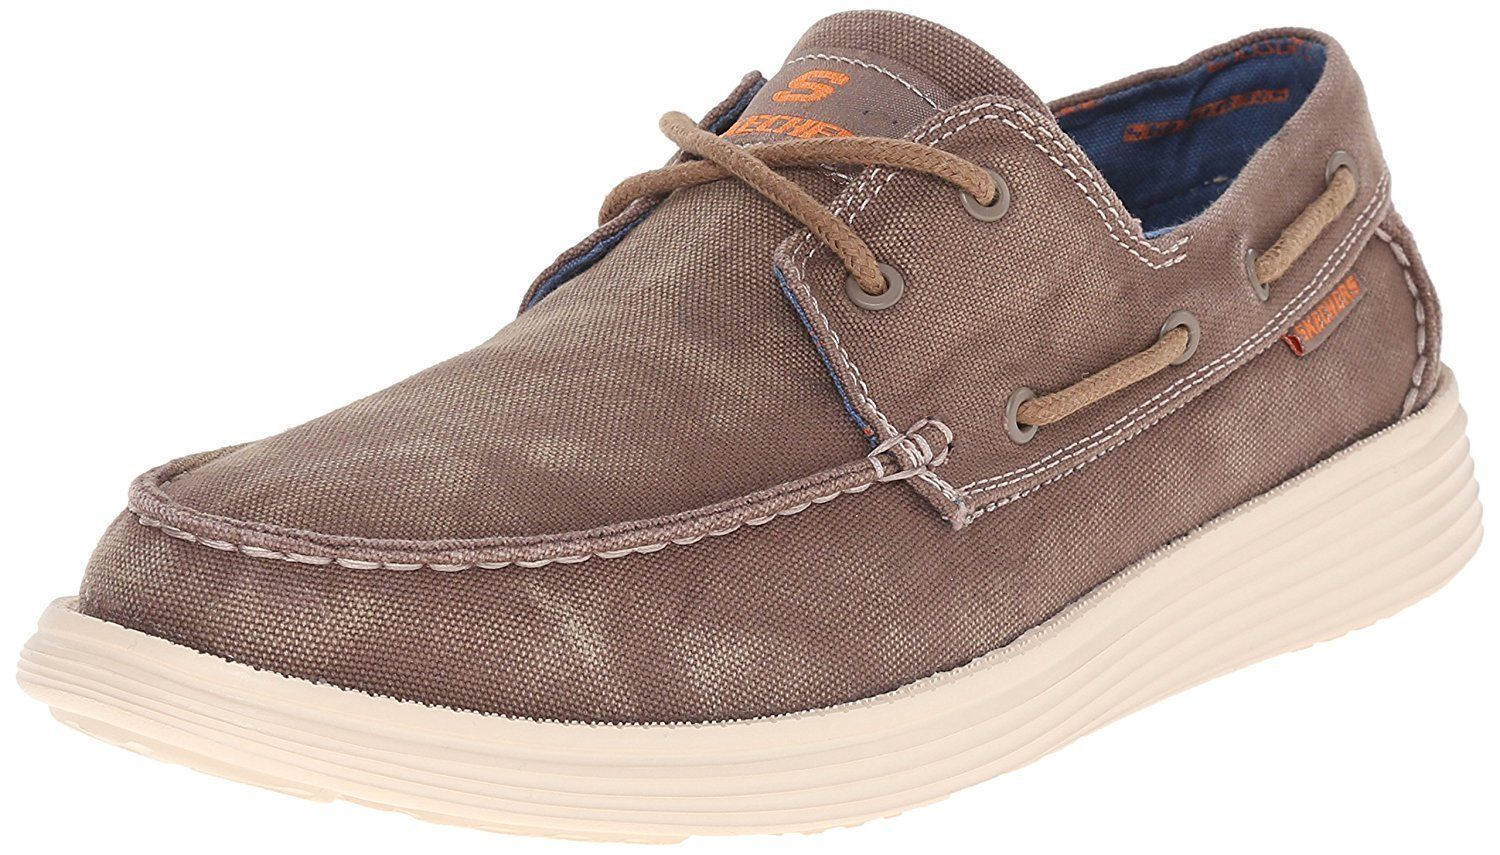 NEW Skechers MenCanvas Boat Shoe Vintage washed Blue & Brown  PK SIZE AND COLOR